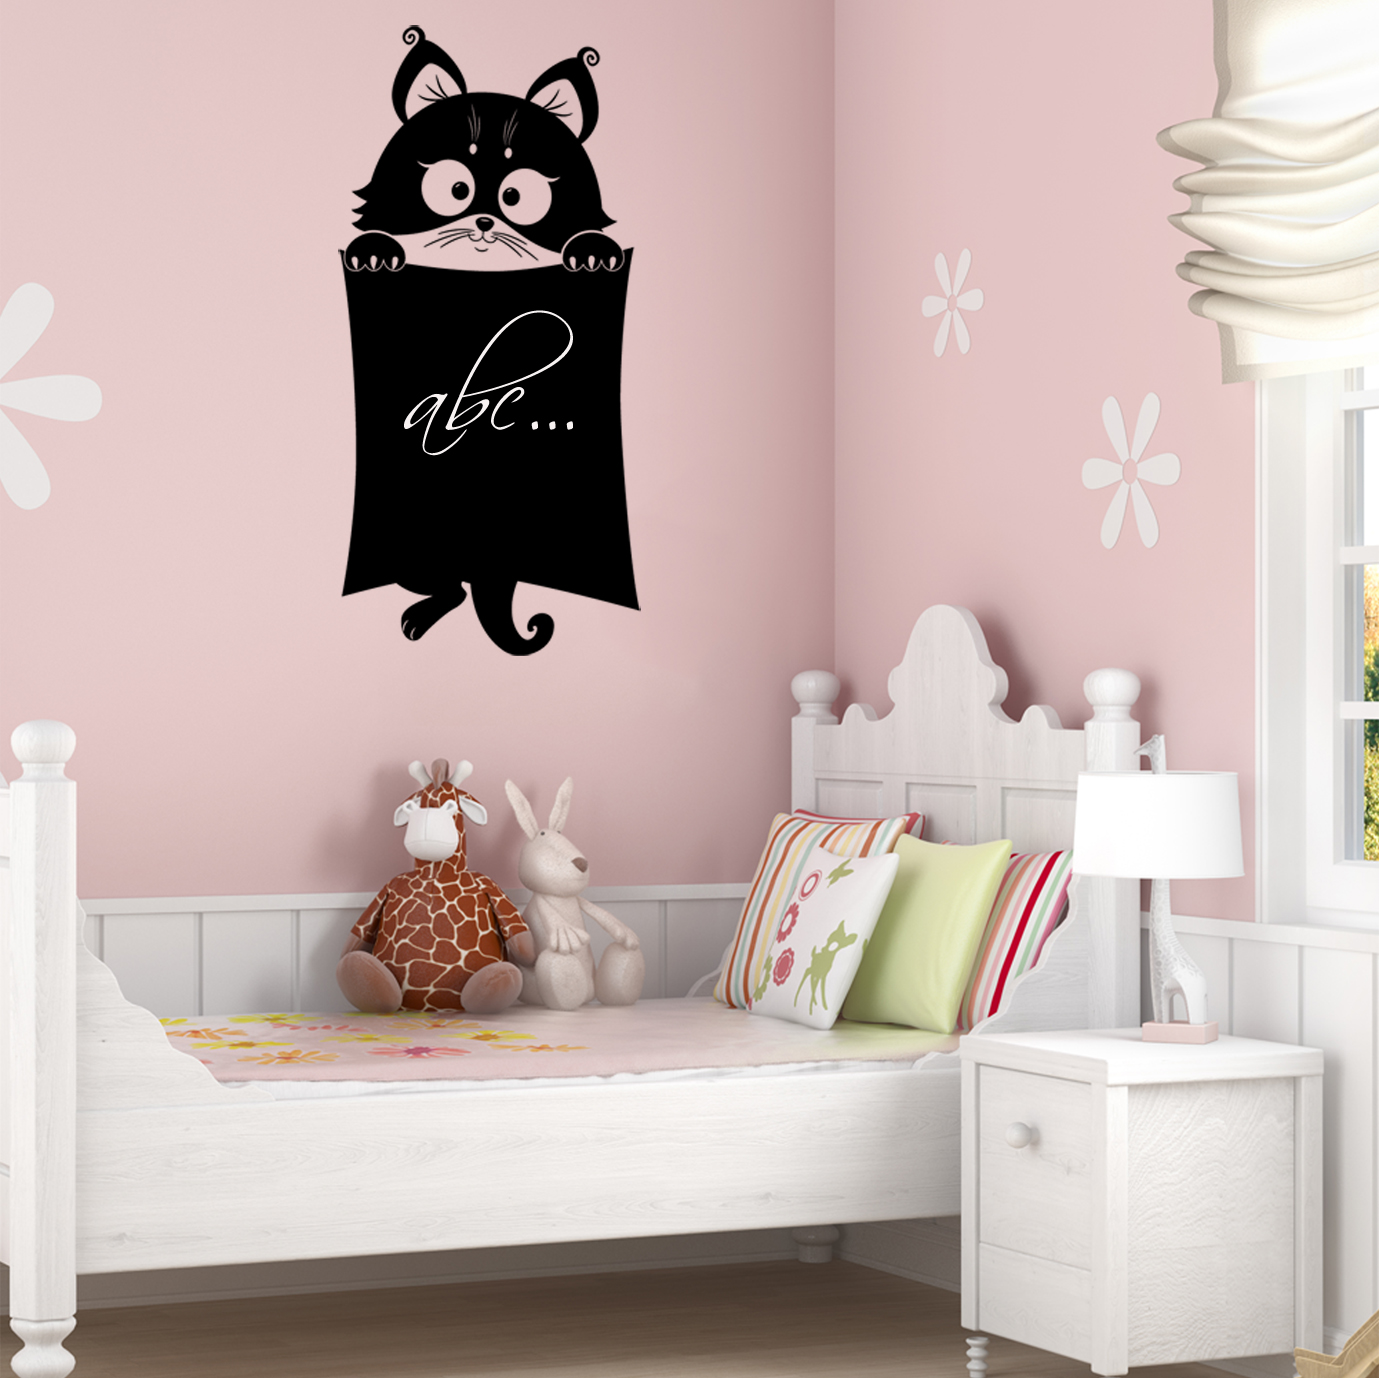 wandtattoos folies tafelfolie katze. Black Bedroom Furniture Sets. Home Design Ideas